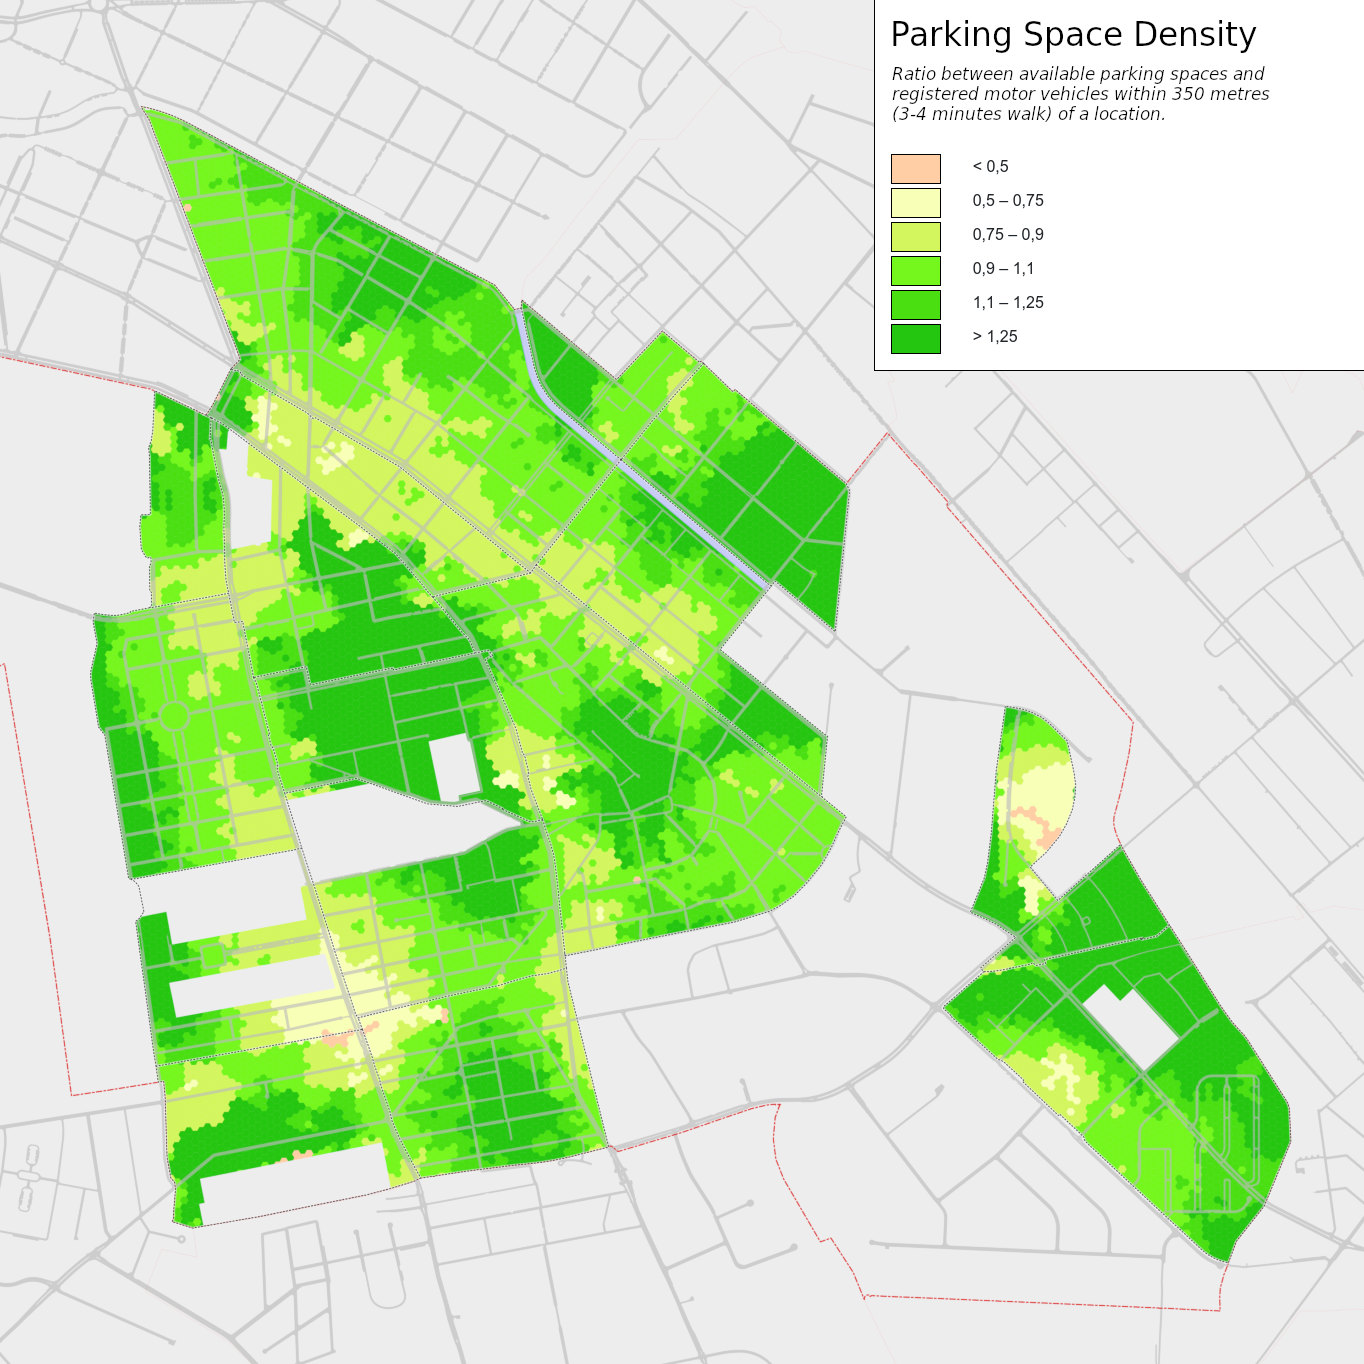 Parking Space Density